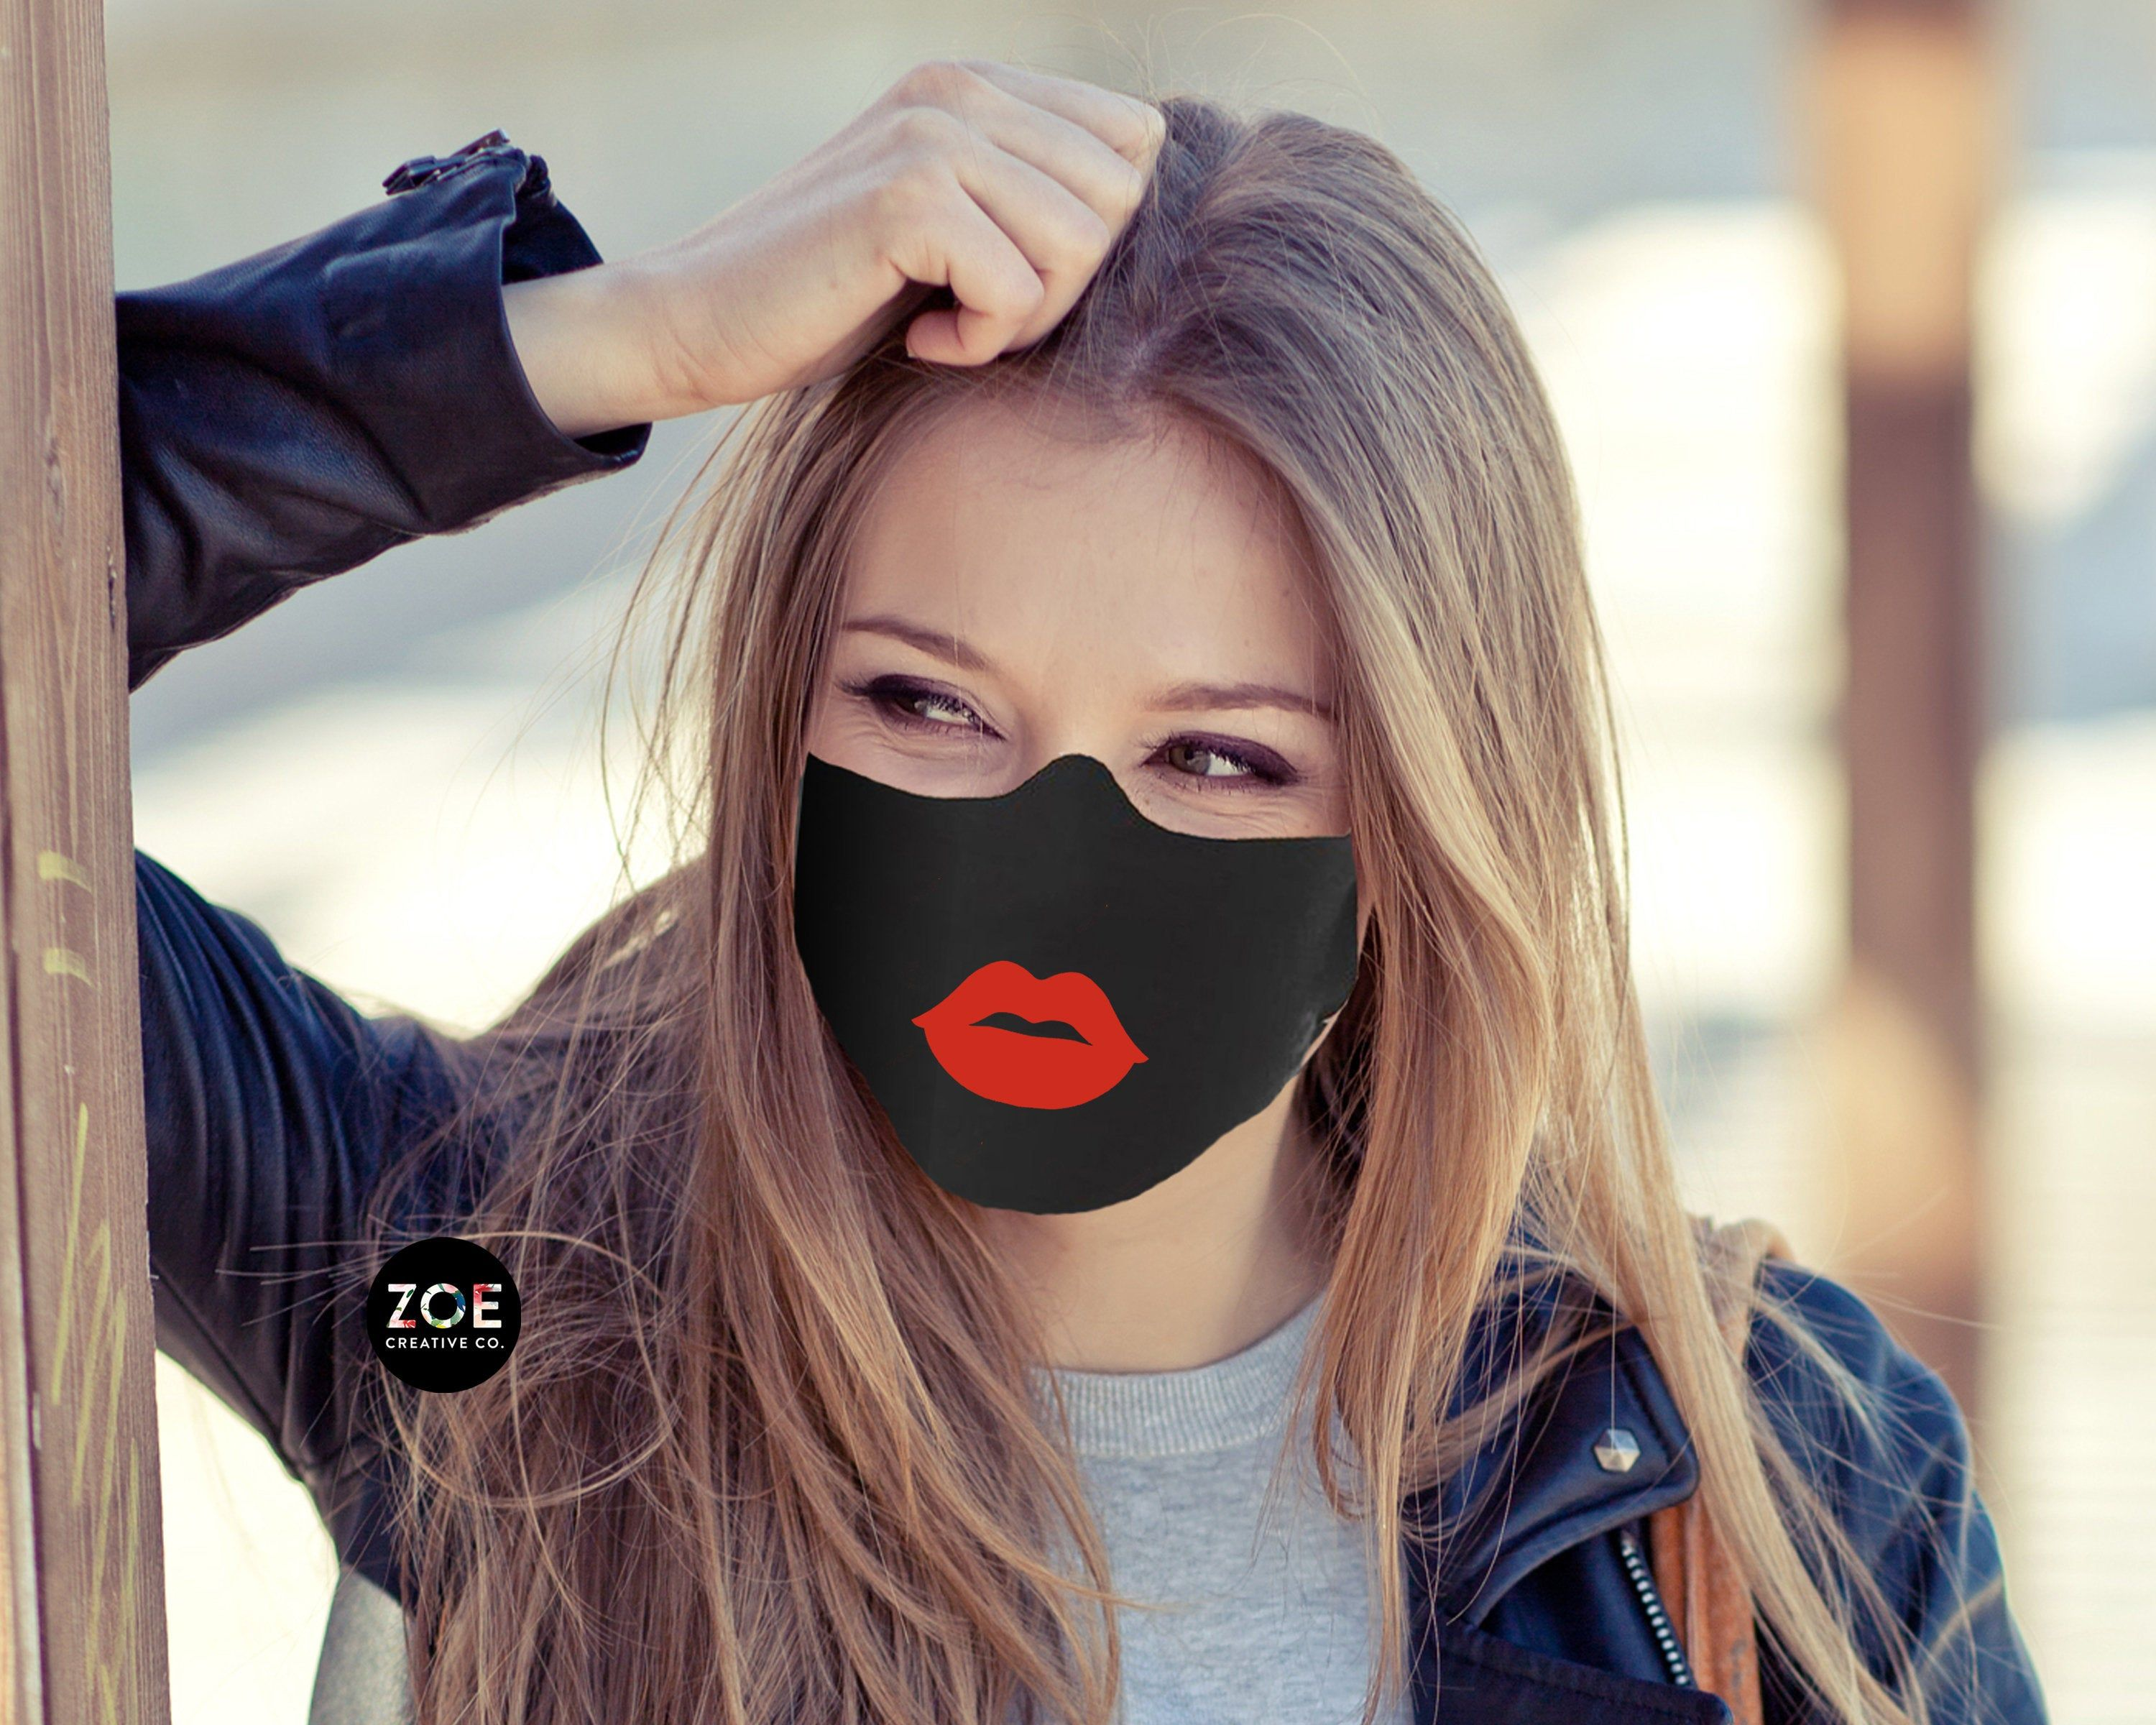 Red Lips Face Mask With Lipstick Face Mask With Lips On It Stylish Face Mask Breathable Washable Face Mask Womens Made In Usa Facemas In 2020 Face Girl Face Face Mask